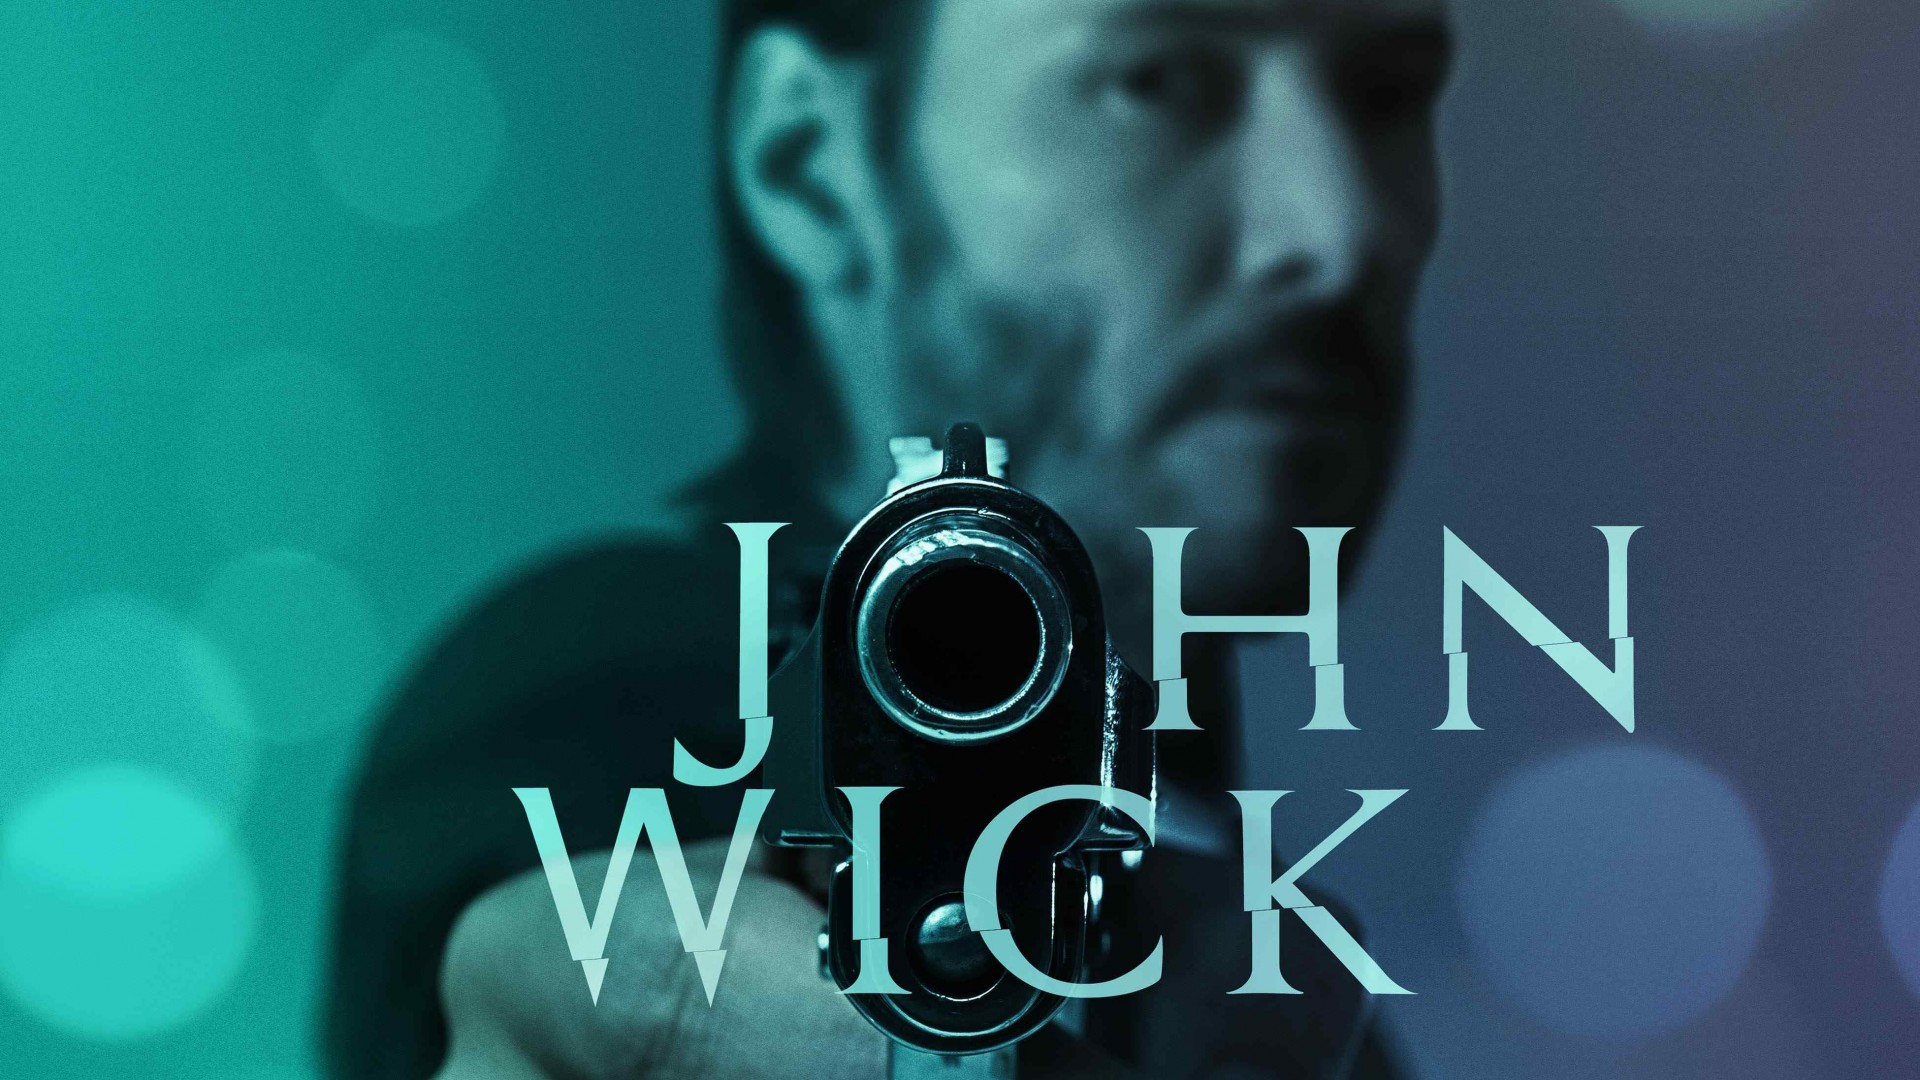 John Wick, 2015, movie, film, gun, blue, green, weapon, Keanu Reeves, Michael Nyqvist, Willem Dafoe, poster (horizontal)